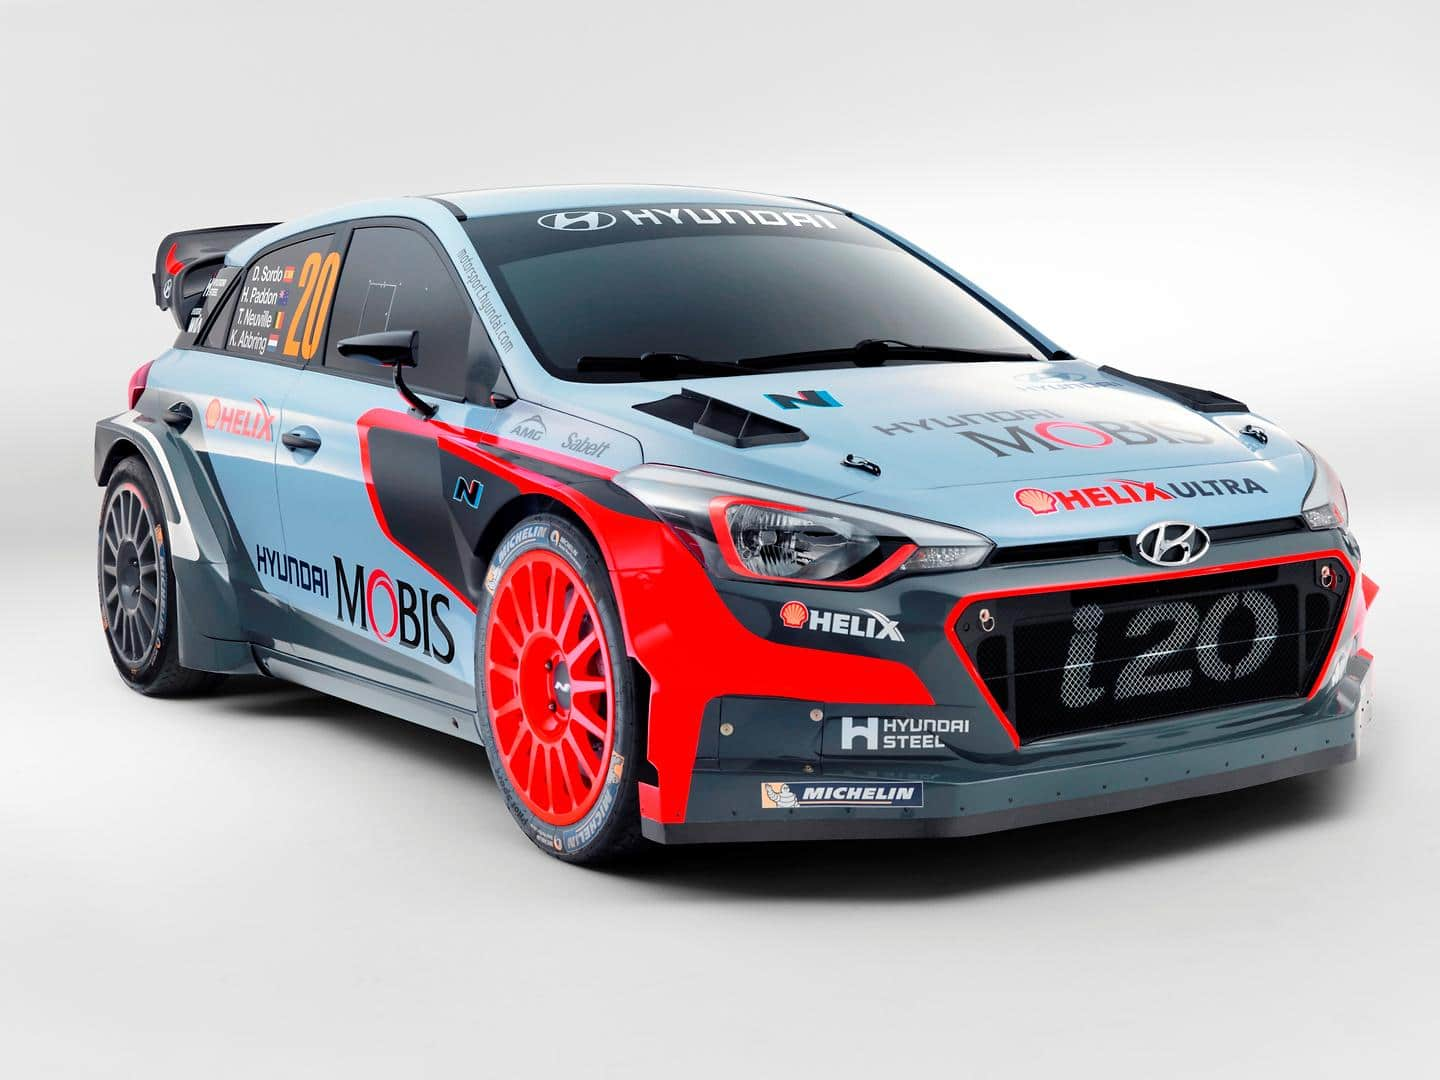 Hyundai Motorsport set to field trio of New Generation i20 WRCs  at WRC Rally Sweden